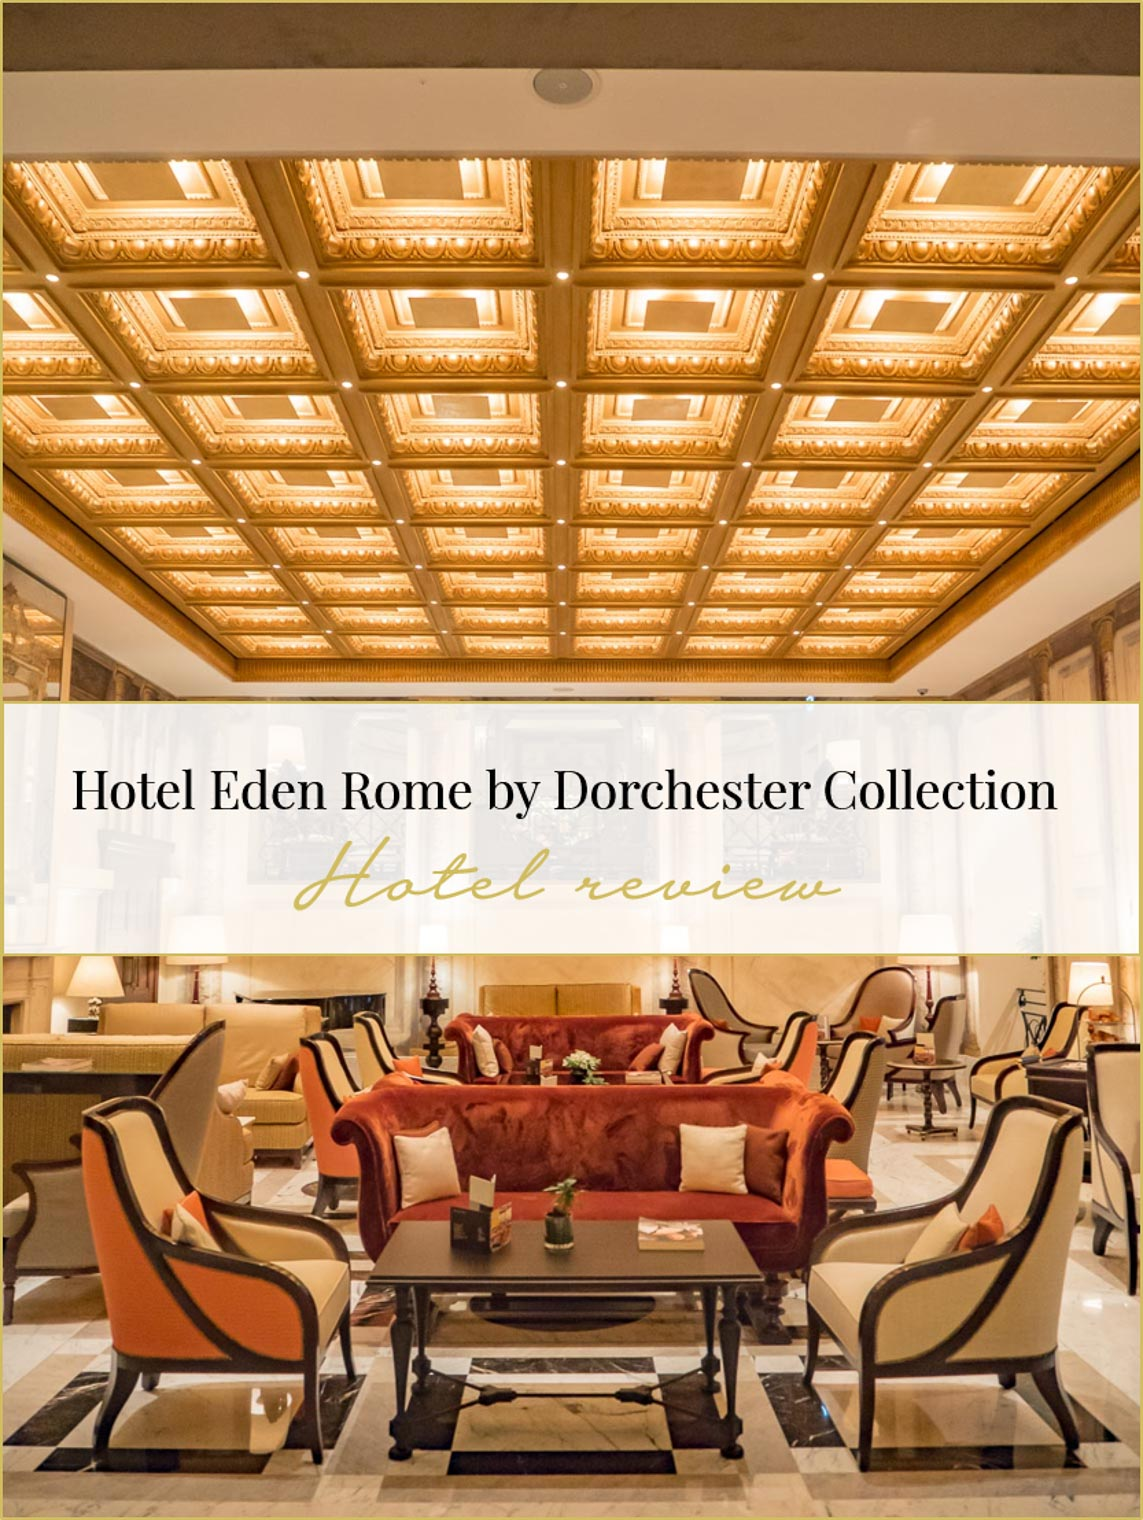 Hotel review: Hotel Eden Rome by Dorchester Collection, Chic Journal blog